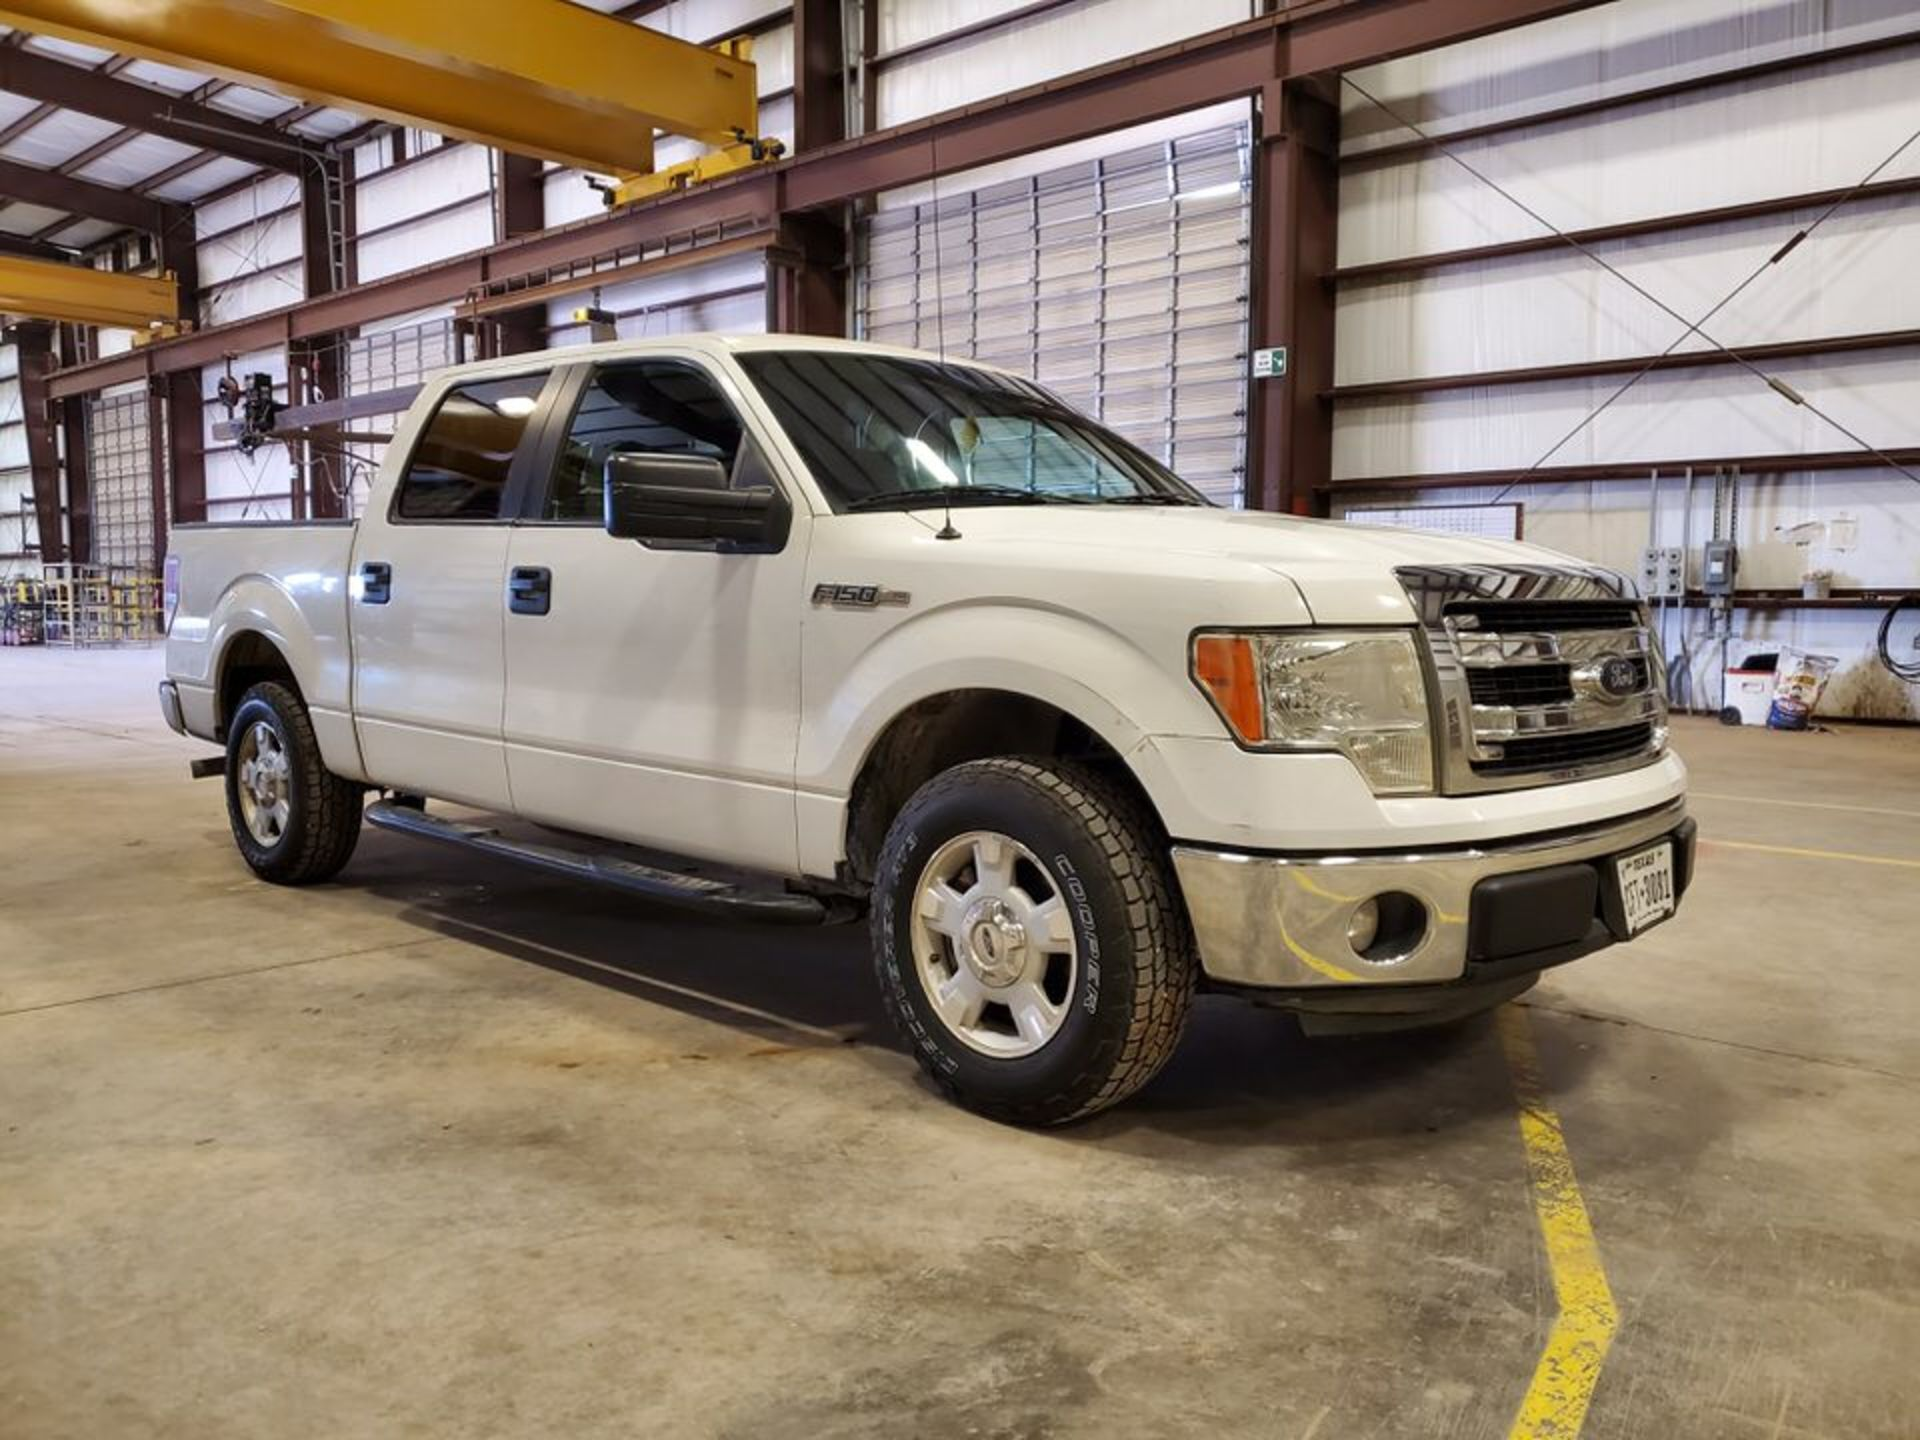 2013 Ford F150 Pickup Vin: 1FTFW1CF0DKF14097, TX Plates: CFT 3081, W/ 6.2L Engine - Image 2 of 19